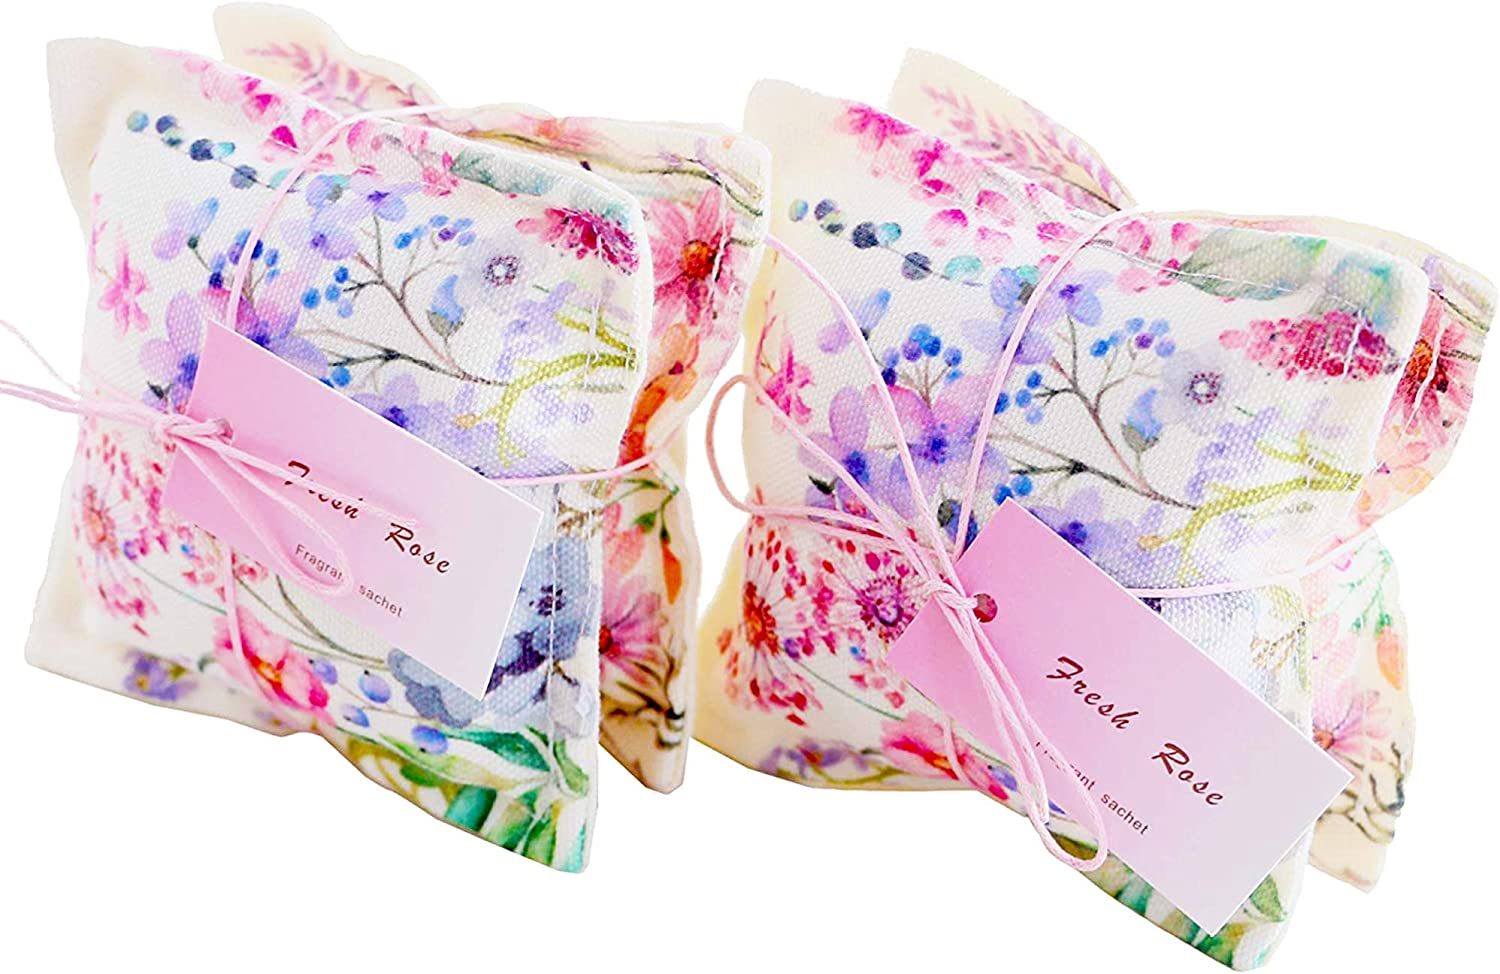 Aucuda Sachet Bags Scented Sachets for Closets and Drawers Fresh Rose Scent, Lot of 4, Great Gift